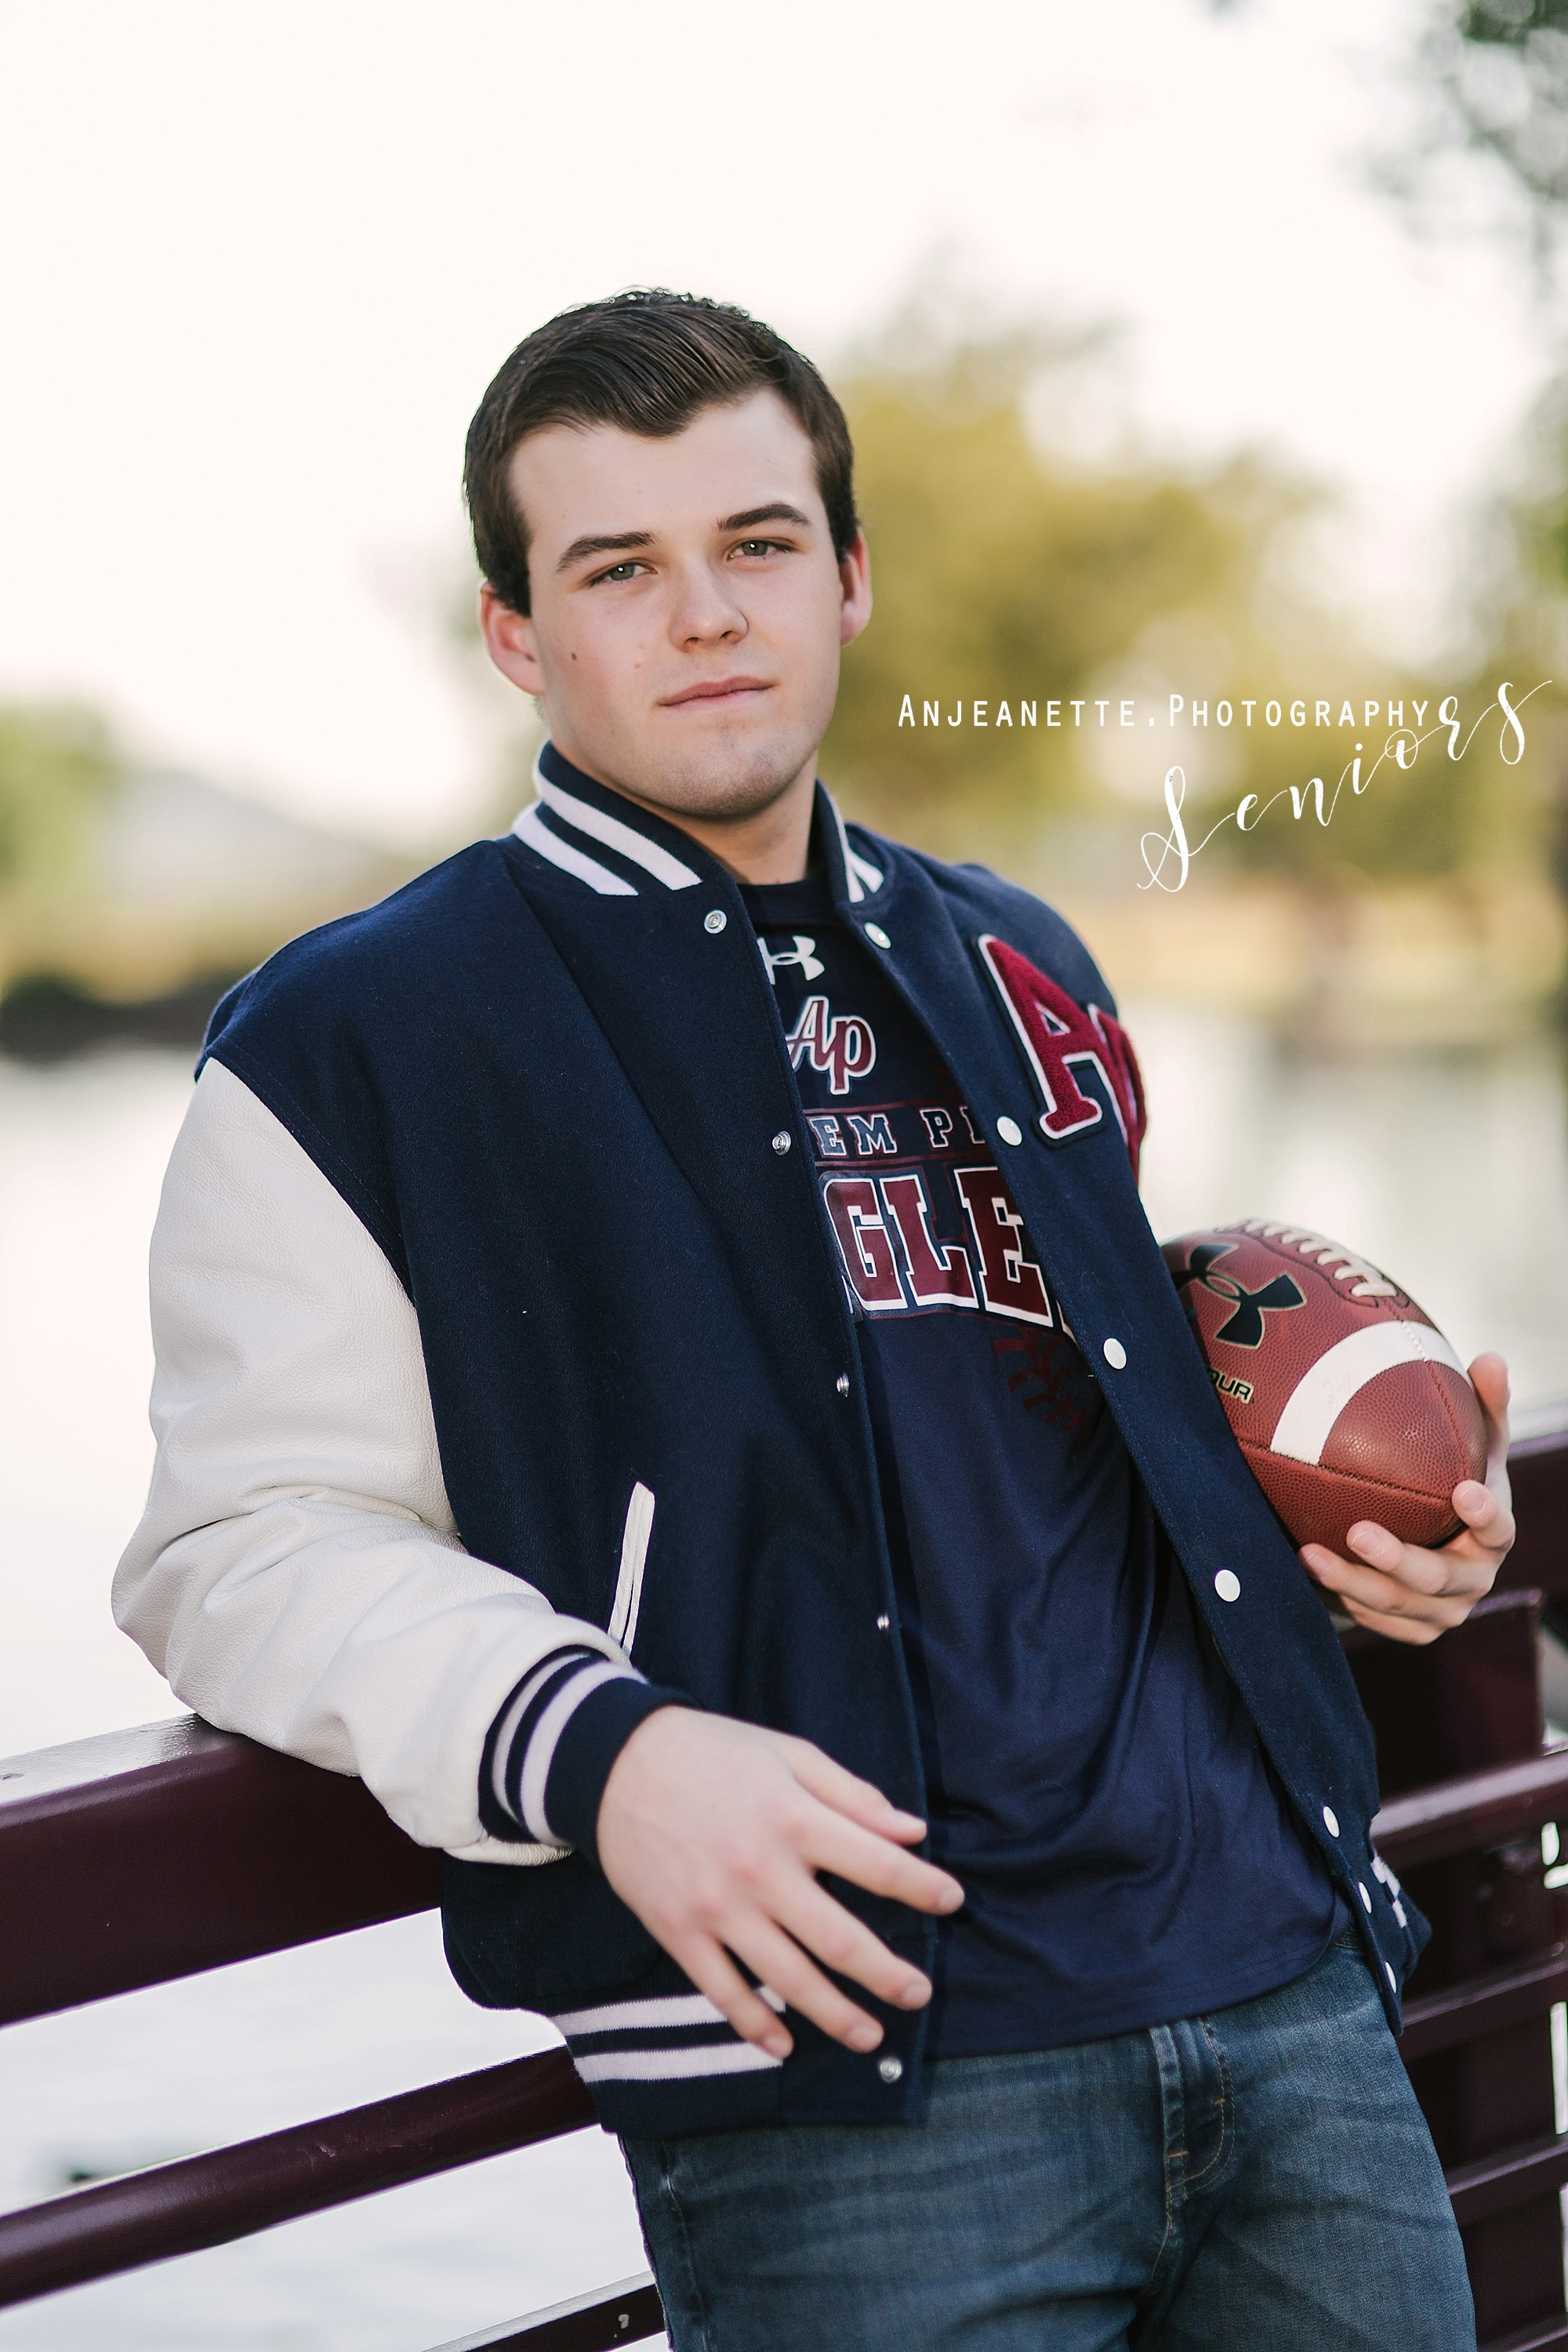 Peoria Az senior grad pictures by Anthem high school portraits, families, & Headshot photographer Anjeanette Photography Phx Arizona Places to take senior pictures